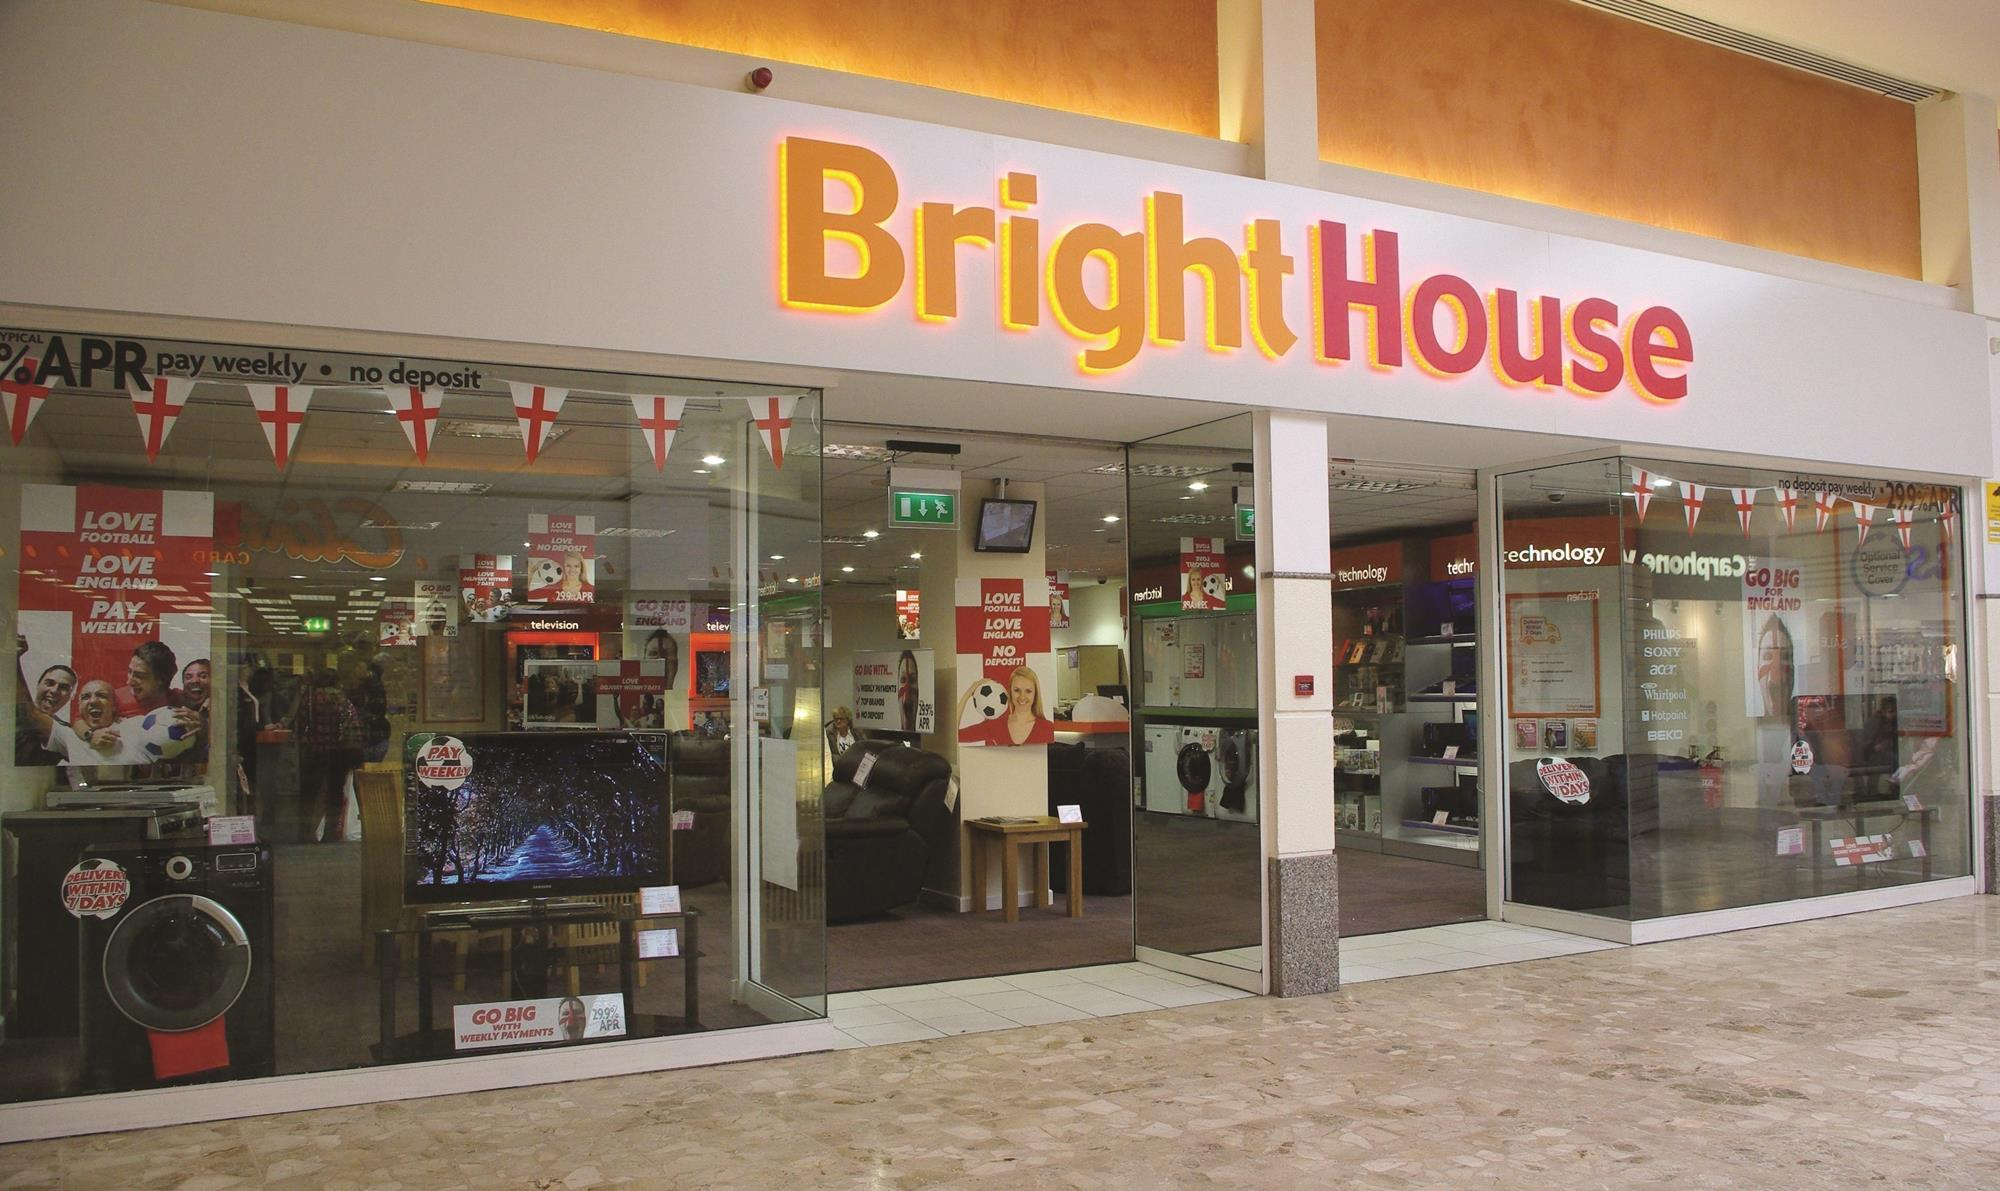 Brighthouse to pay customers 15m after fca probe news for Right house